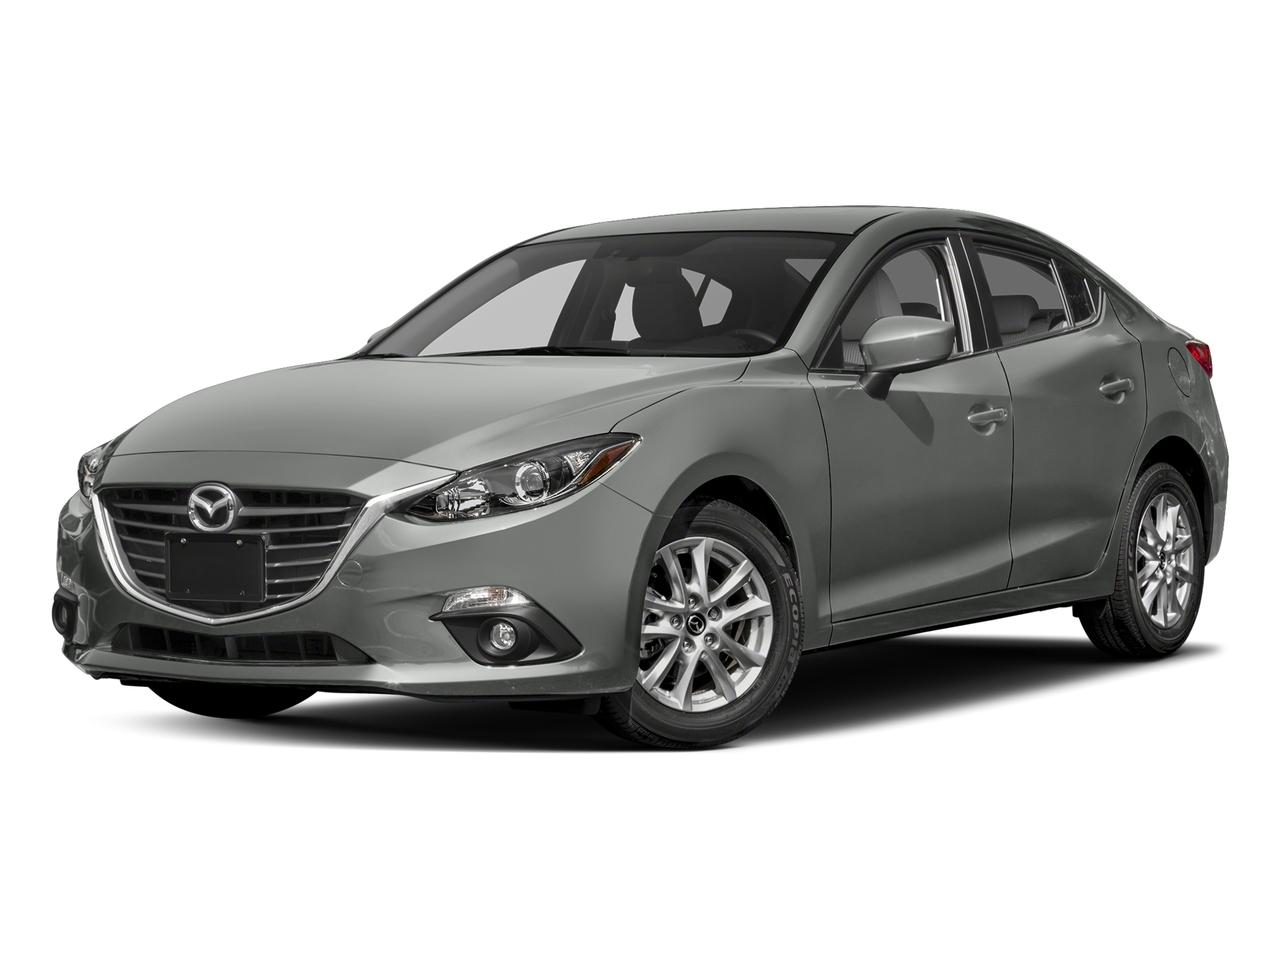 2016 Mazda Mazda3 Vehicle Photo in Medina, OH 44256